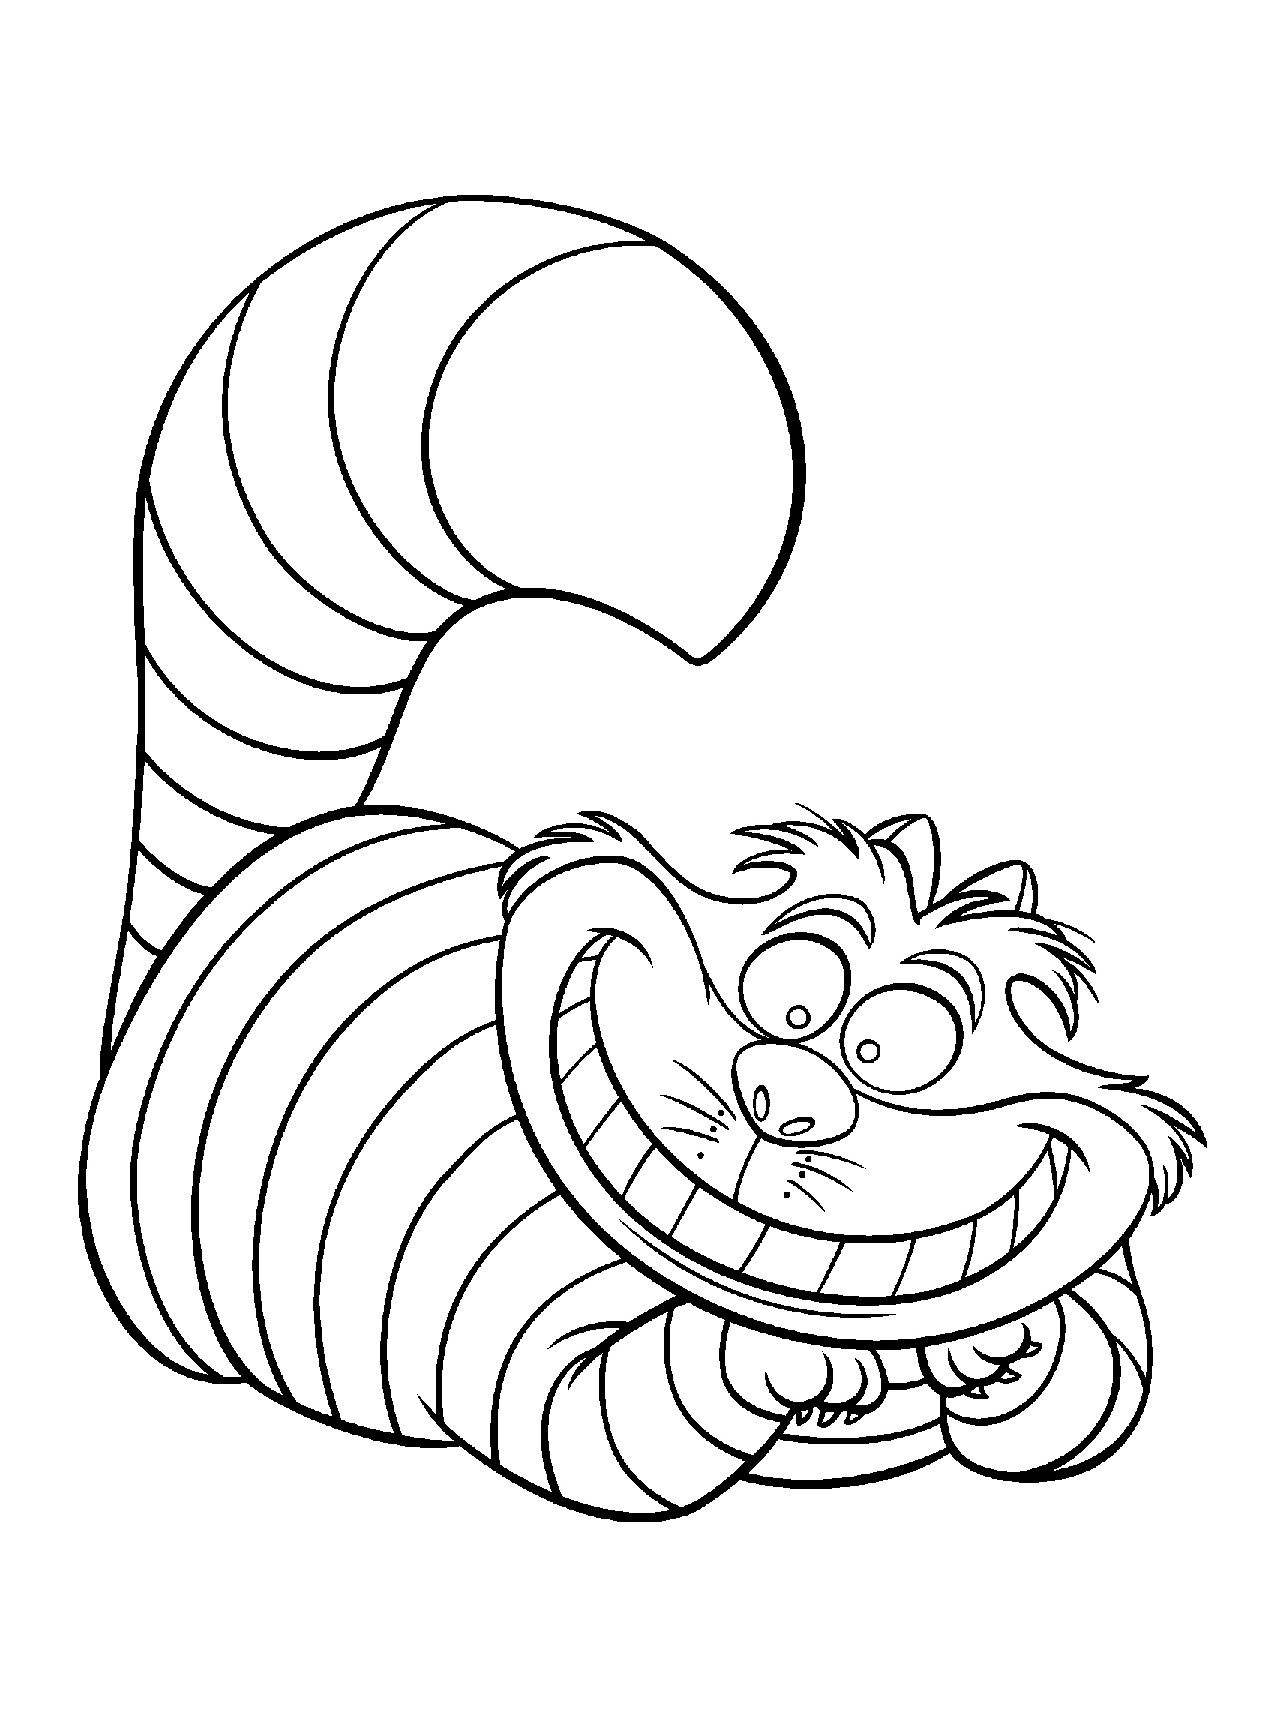 Disney coloring pages, Alice in wonderland party, Cat coloring page